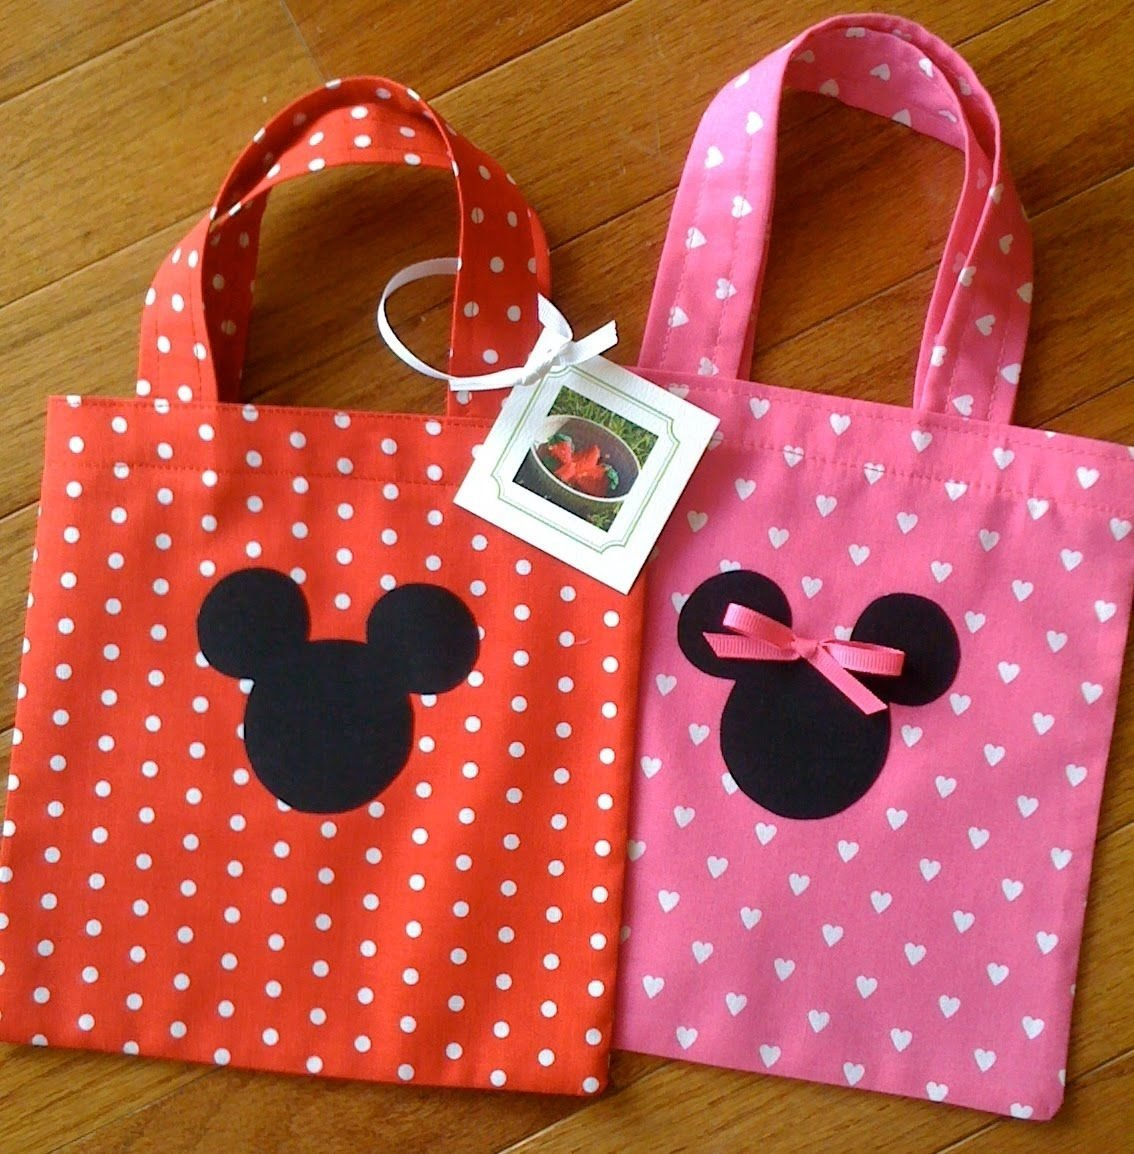 10 Beautiful Minnie Mouse Candy Bags Ideas minnie mouse party making 20 mickey and minnie mouse goody bags 2 2020